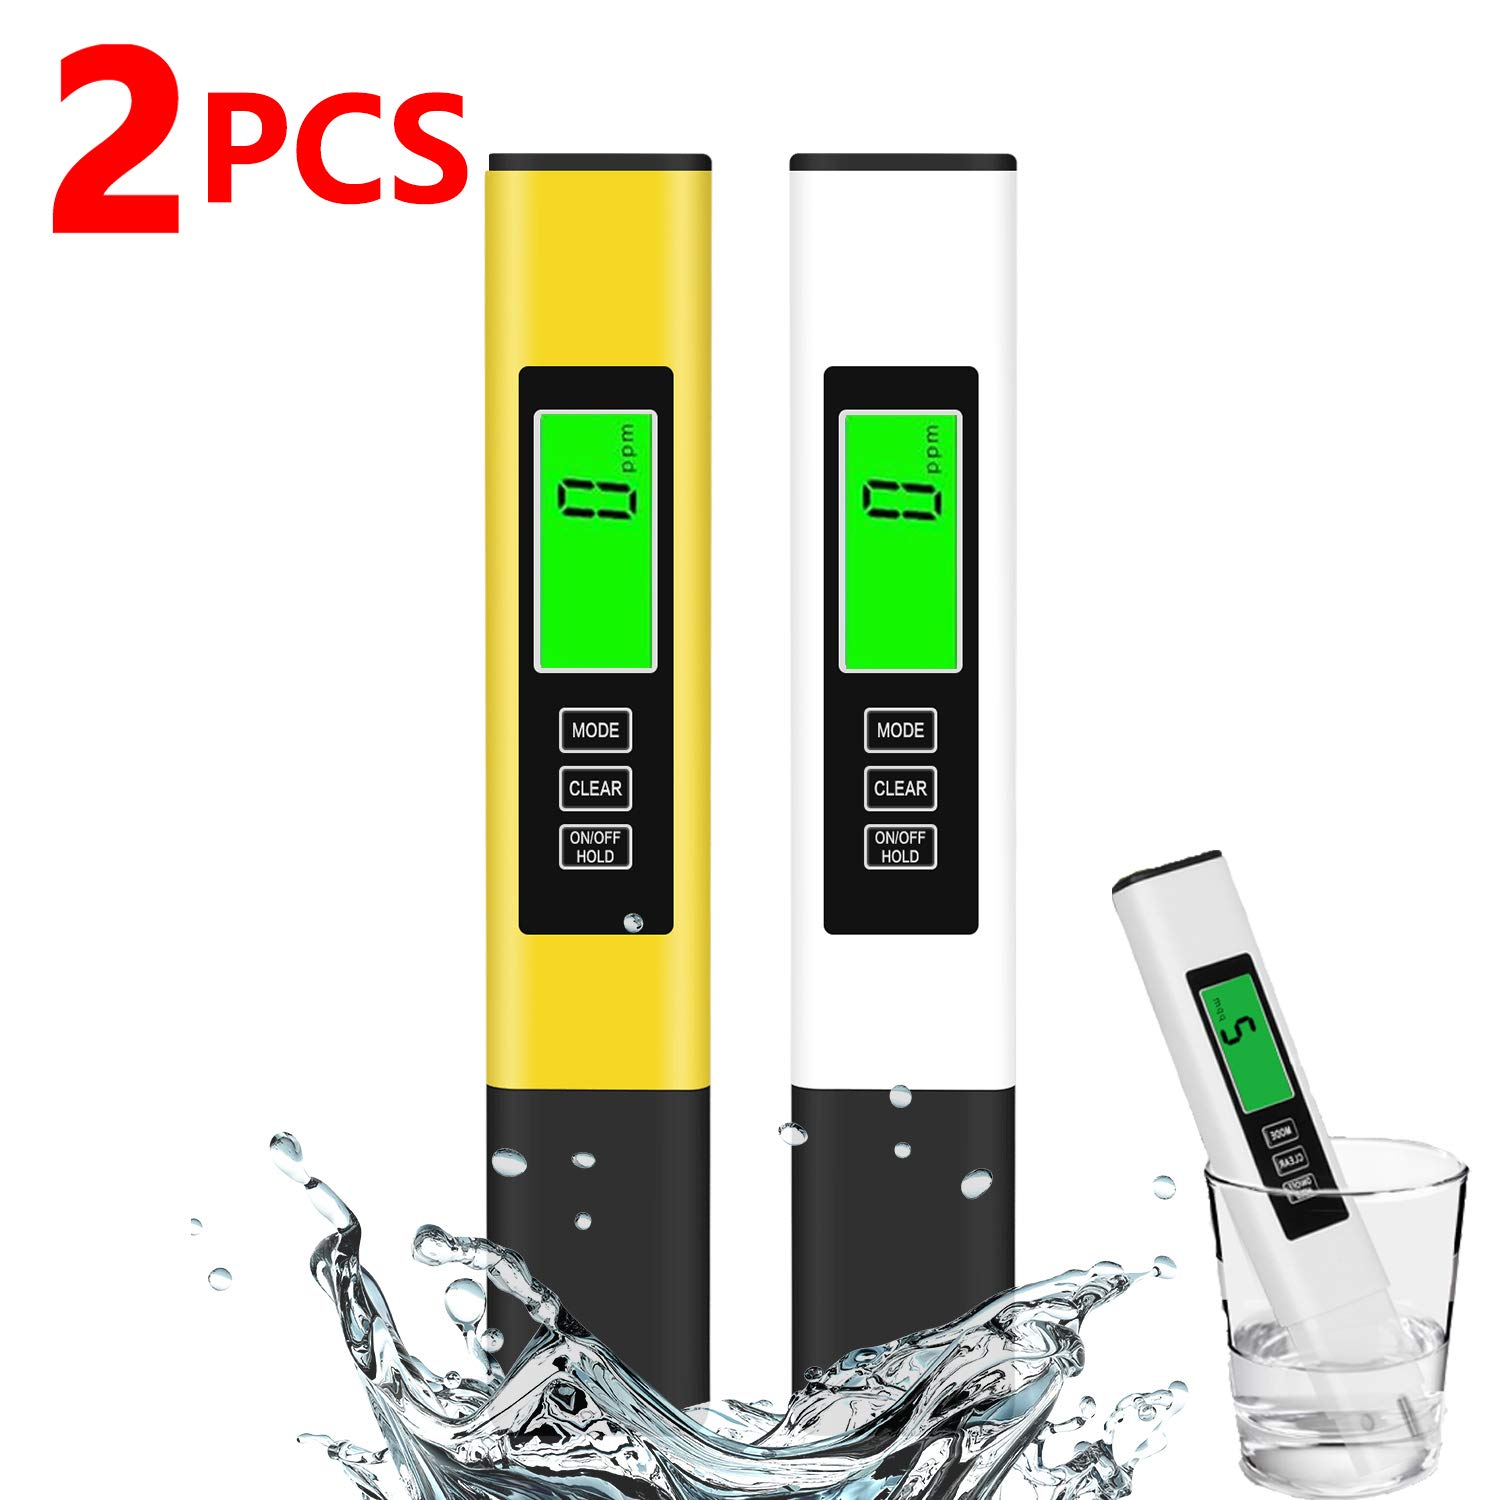 TDS Meter, 2 Pack Digital Water Tester, Water Quality Tester, Temperature & EC Meter 4 in 1, 0-9999ppm, ppm Meter for Drinking Water, Aquarium and More…